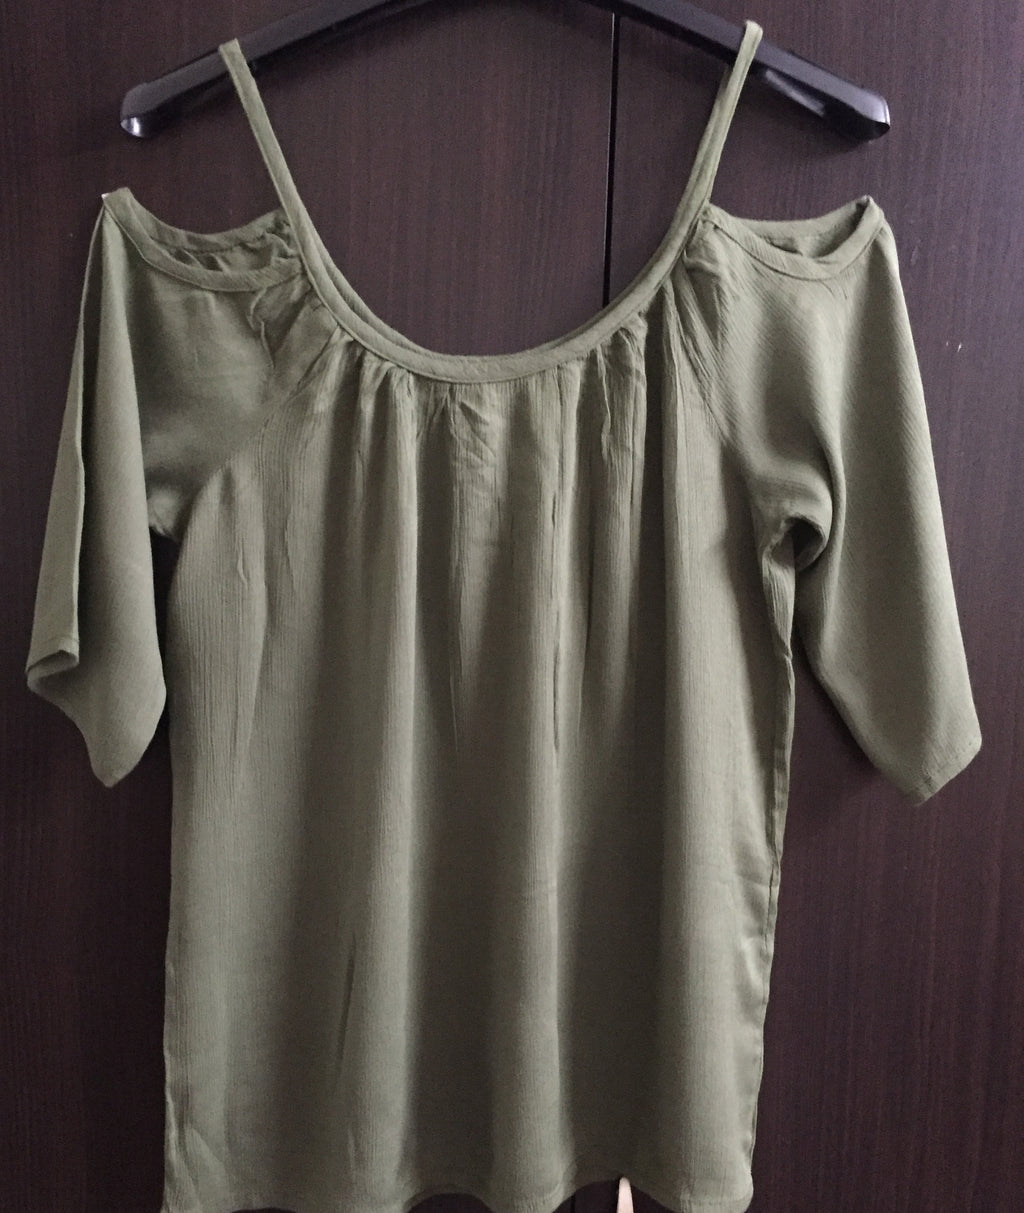 Cold - Shoulder Top - Plain Sage Green - #FTFY - For The Fun Years